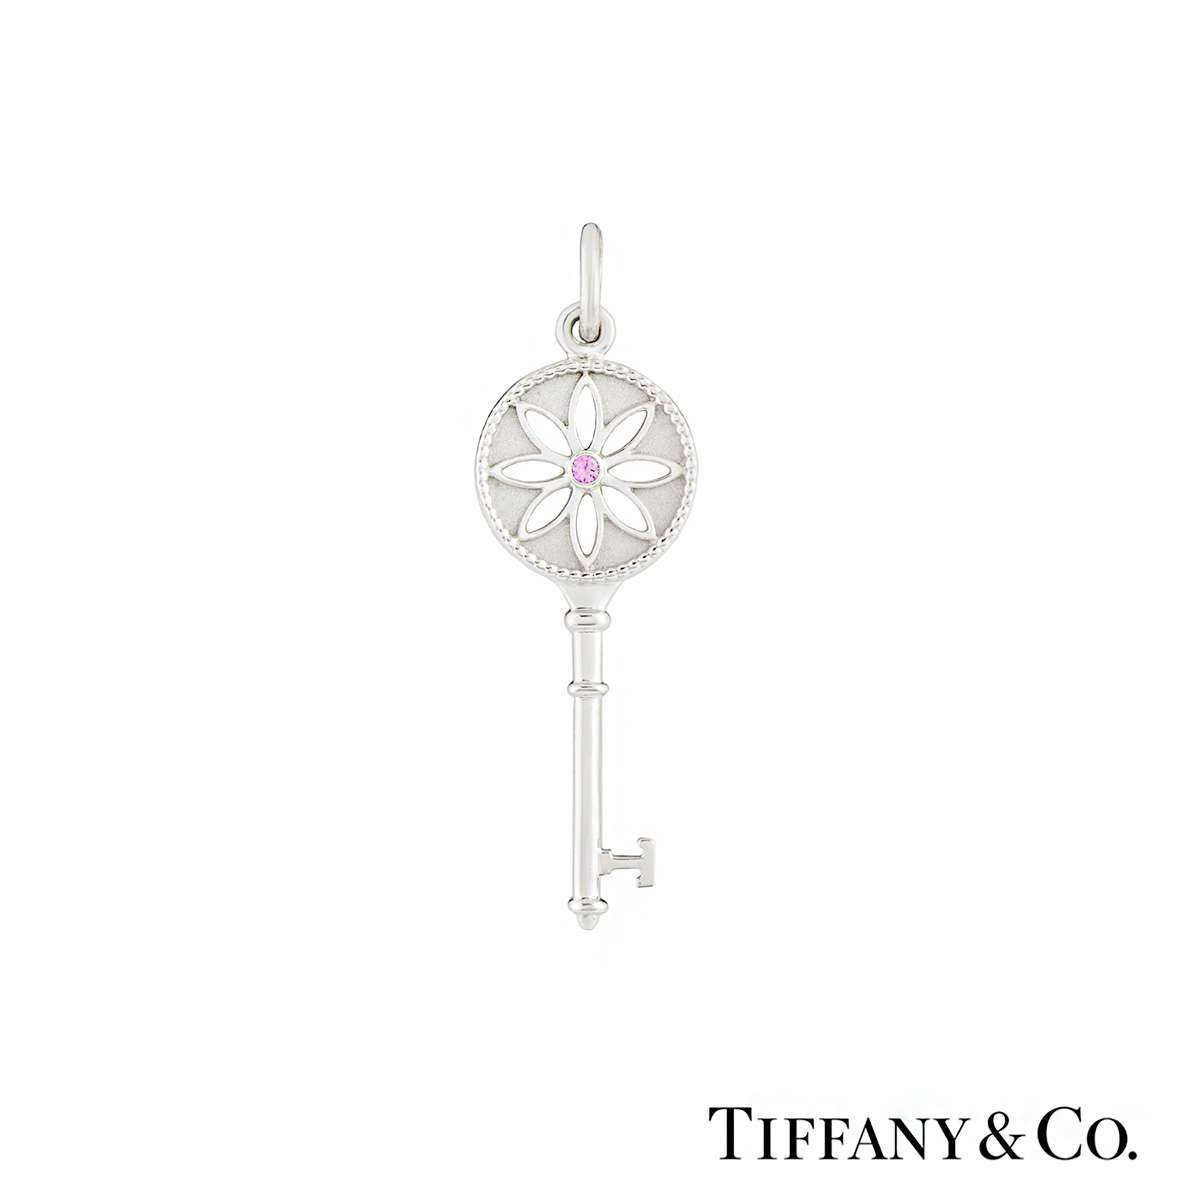 Tiffany & Co. Daisy Key Pendant